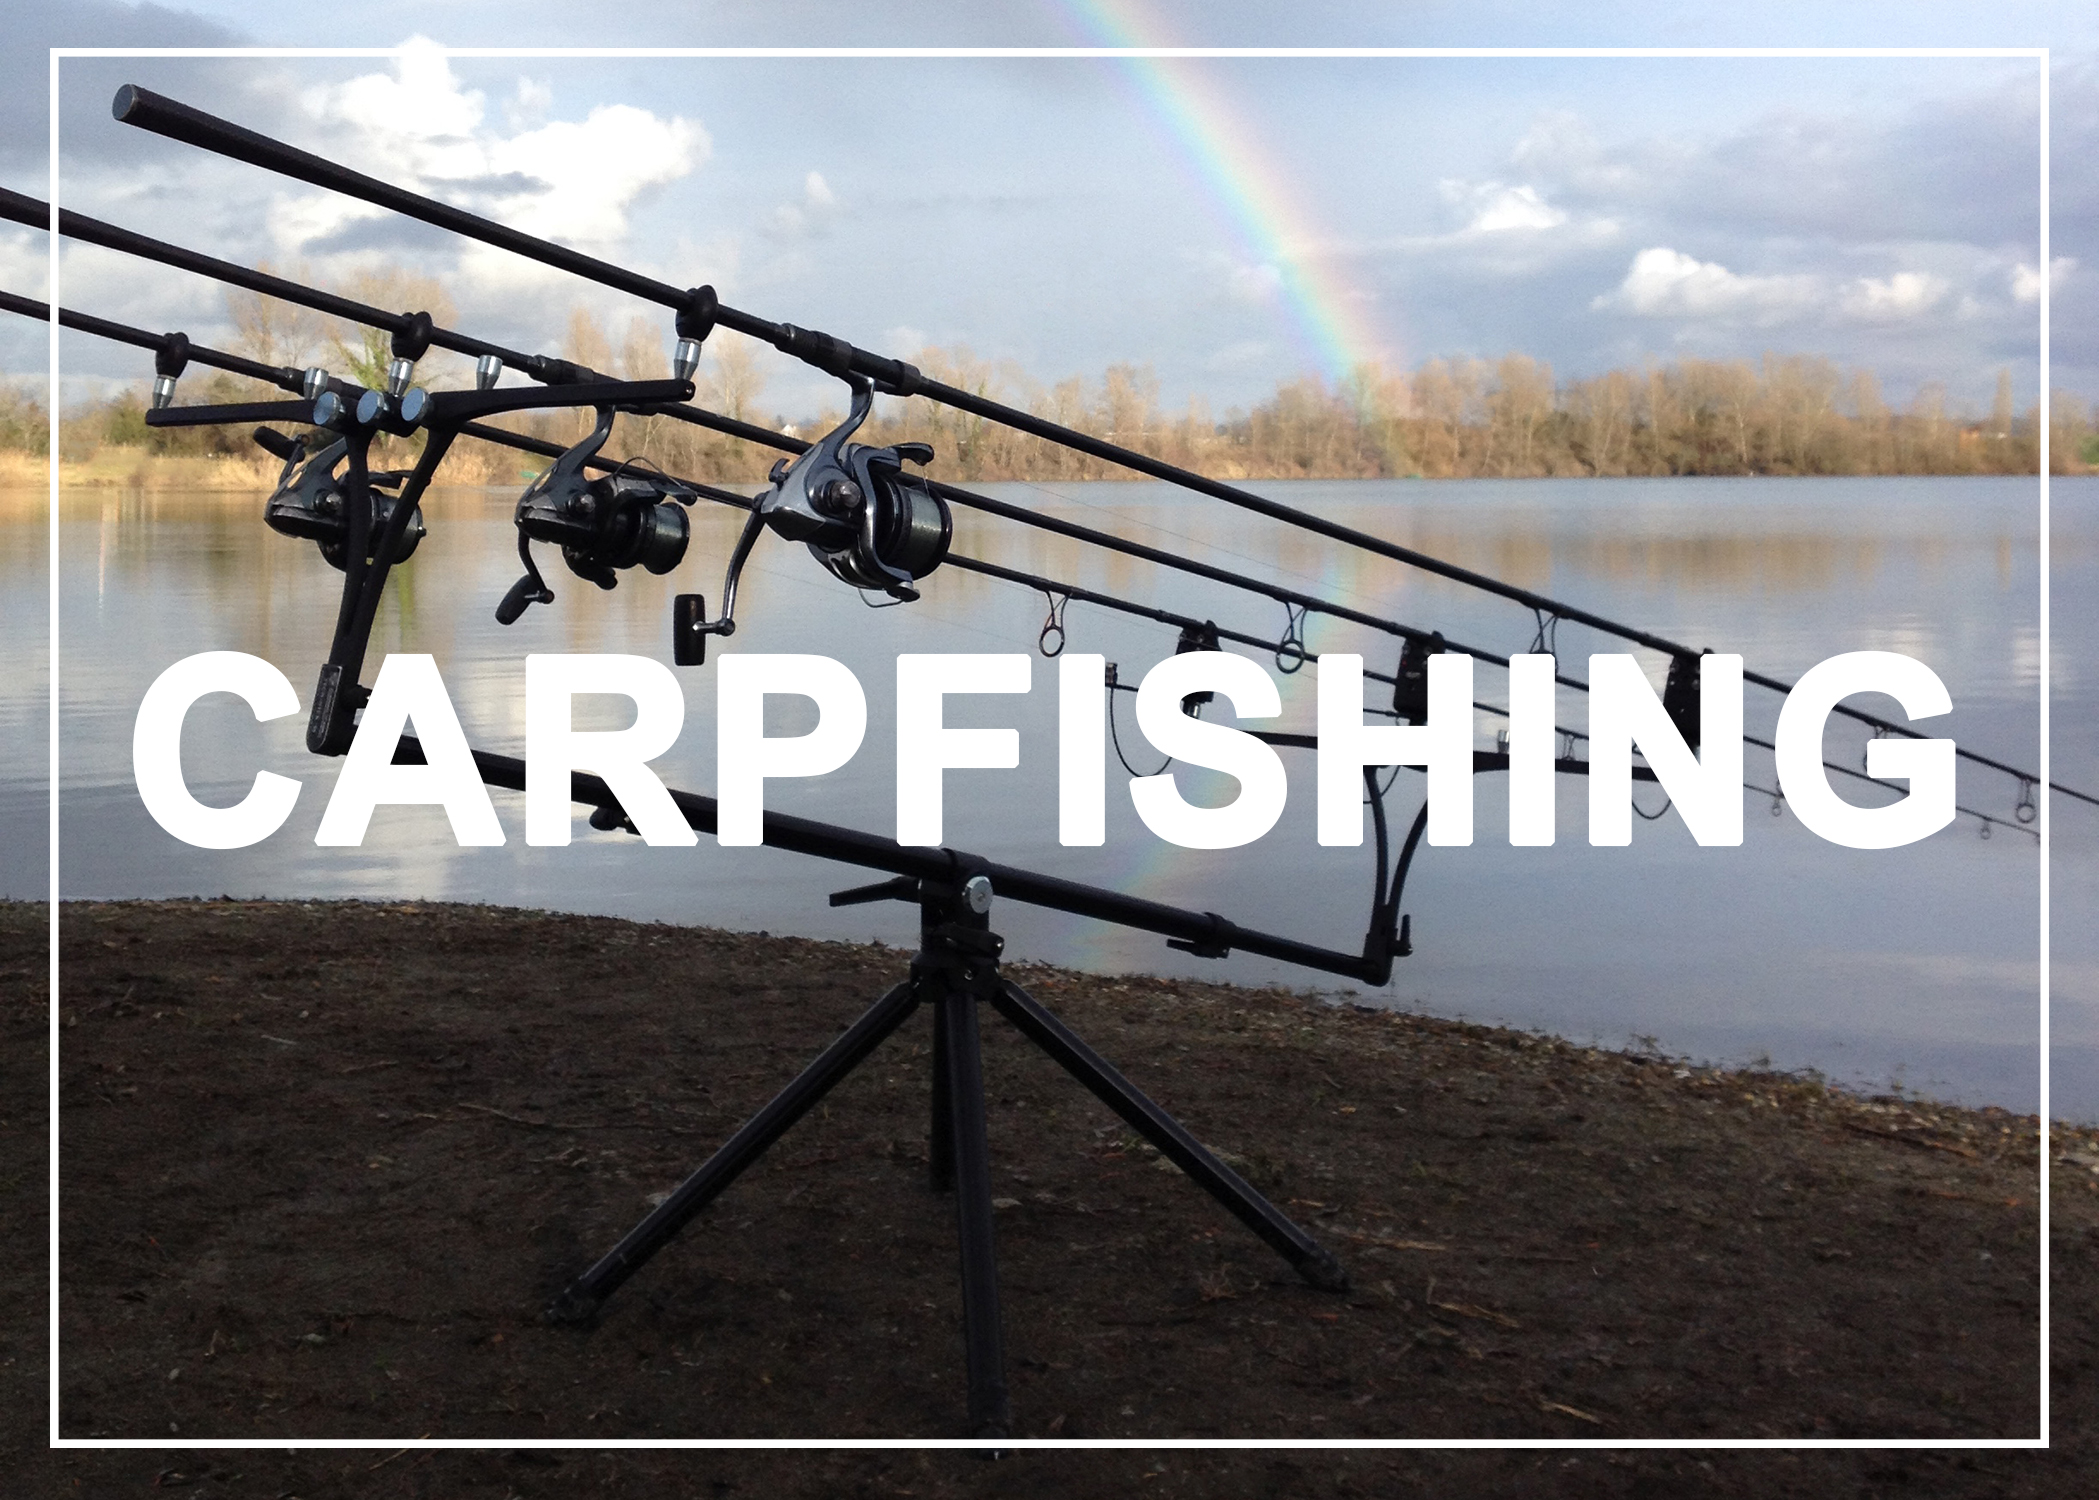 CARPFISHING